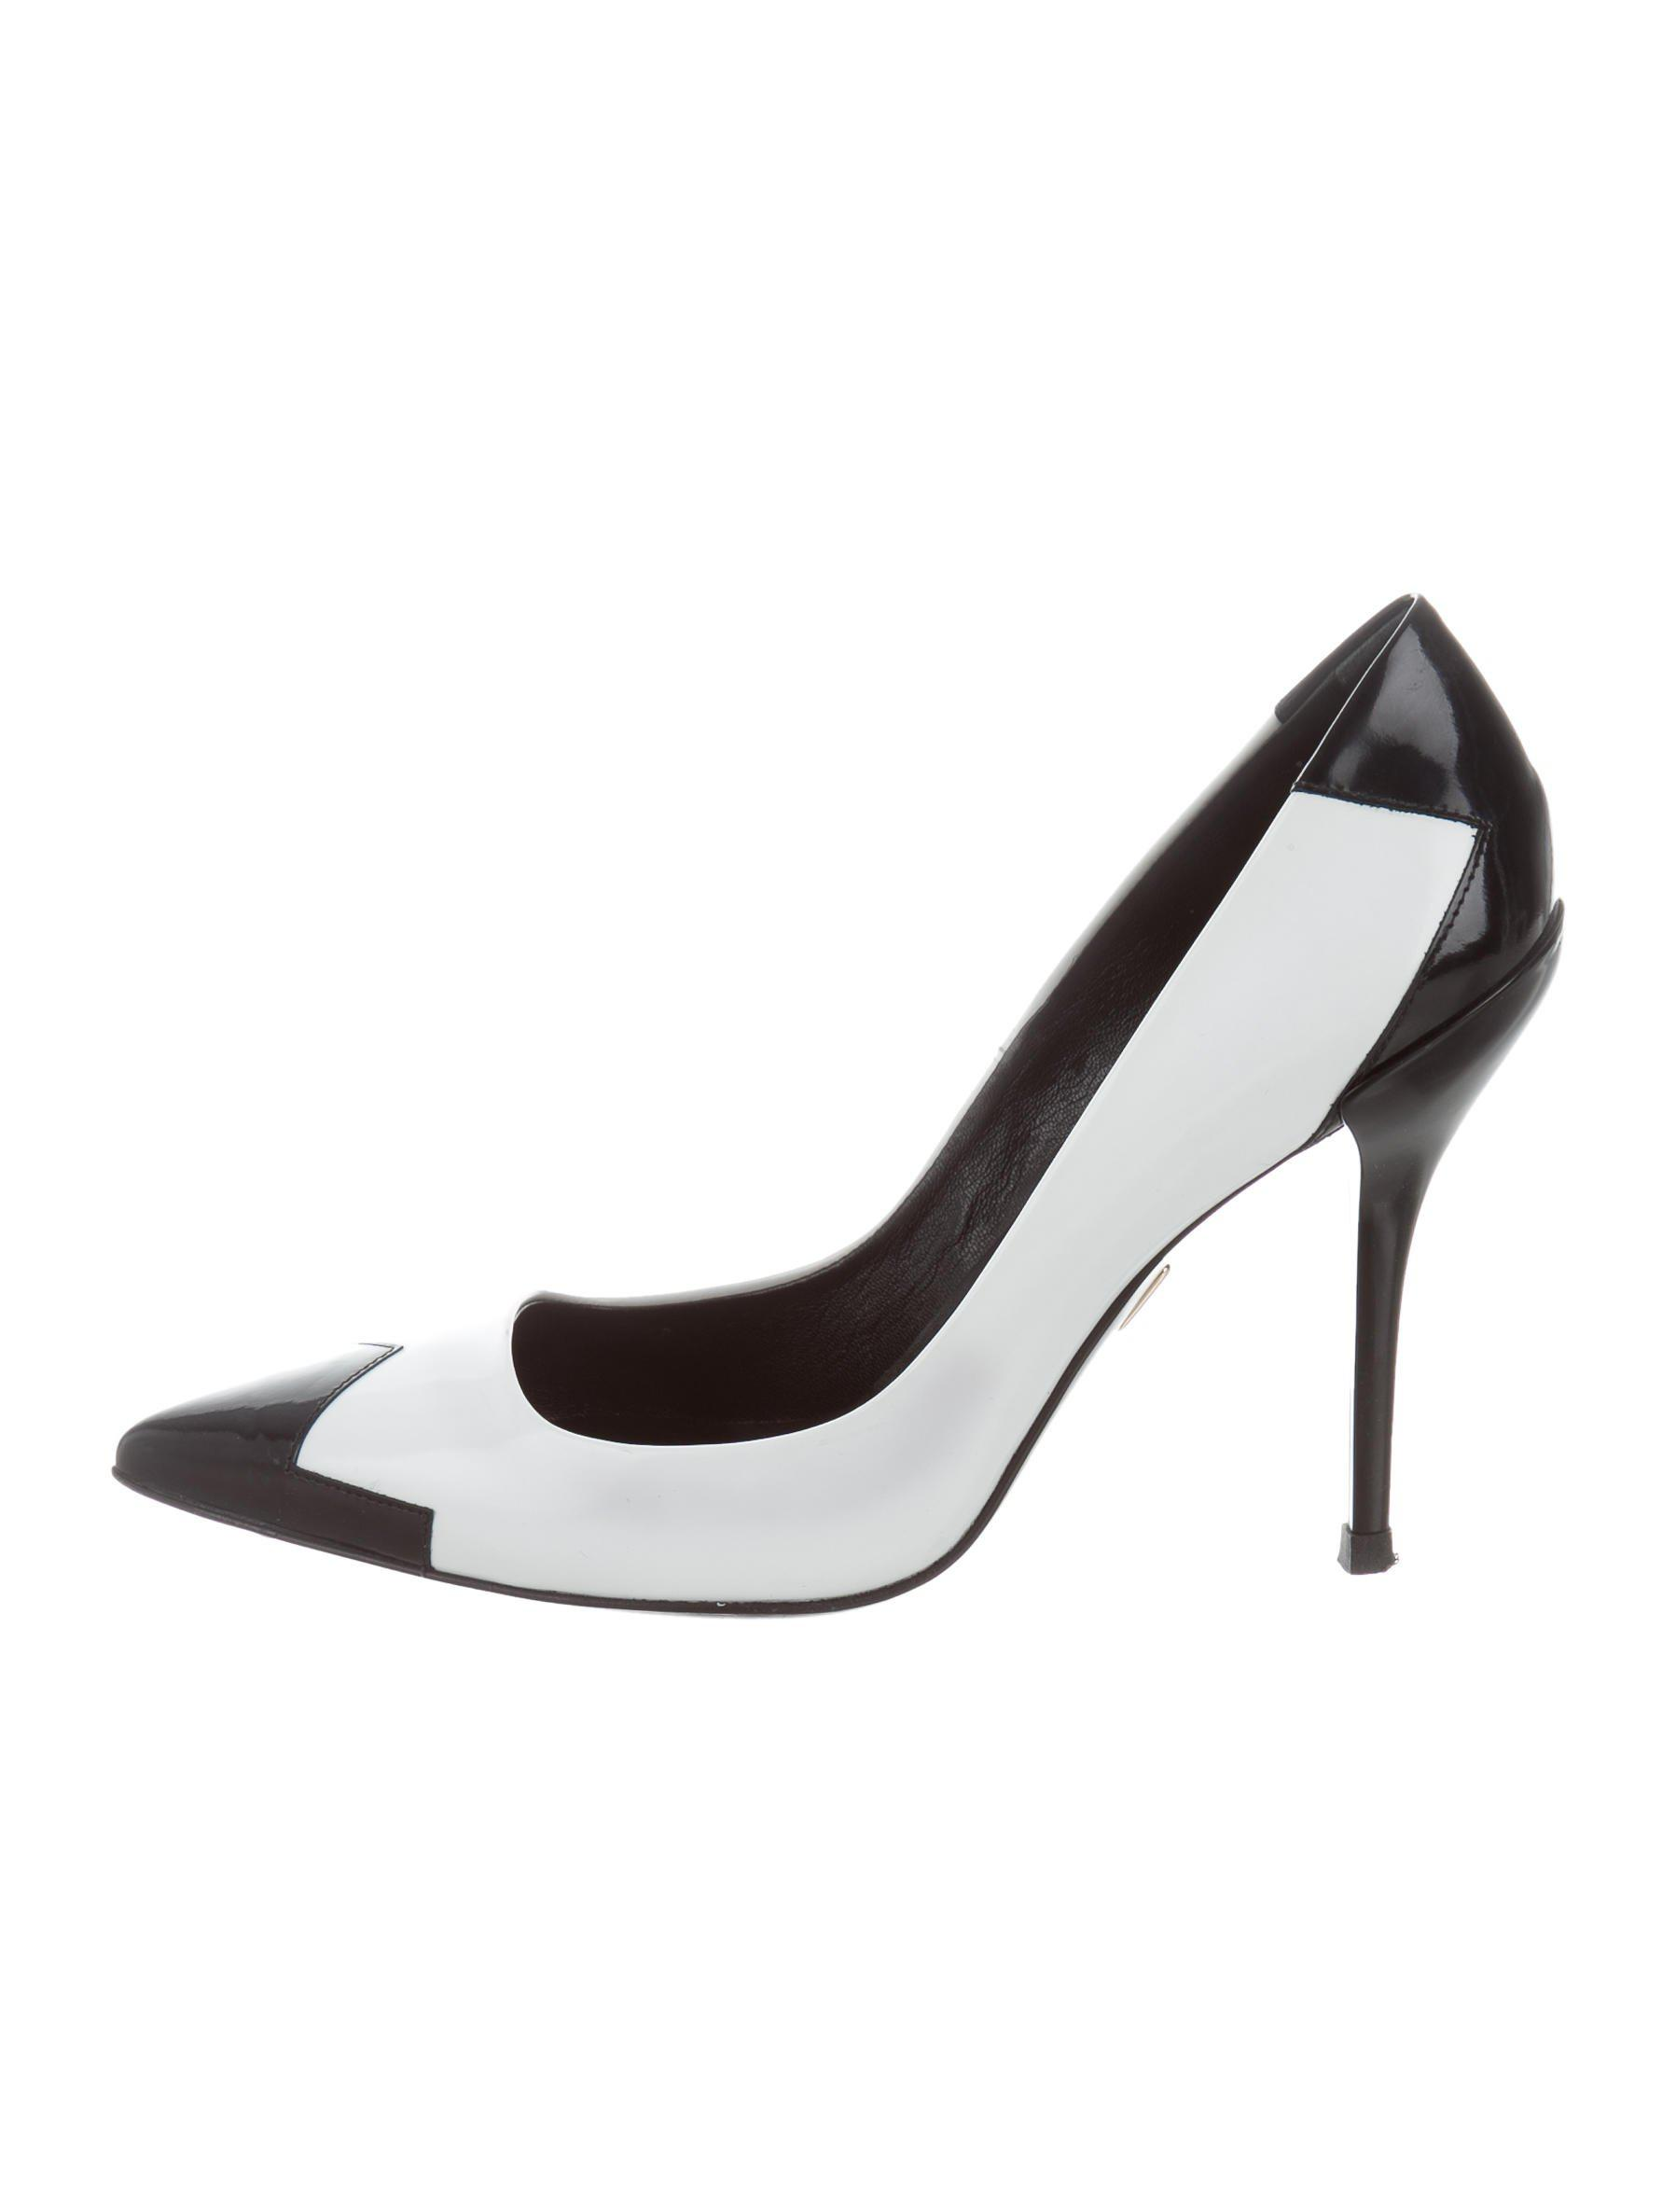 Roger Vivier Pointed-Toe Studded Pumps sale collections cheap online shop buy cheap best seller Egf6hy